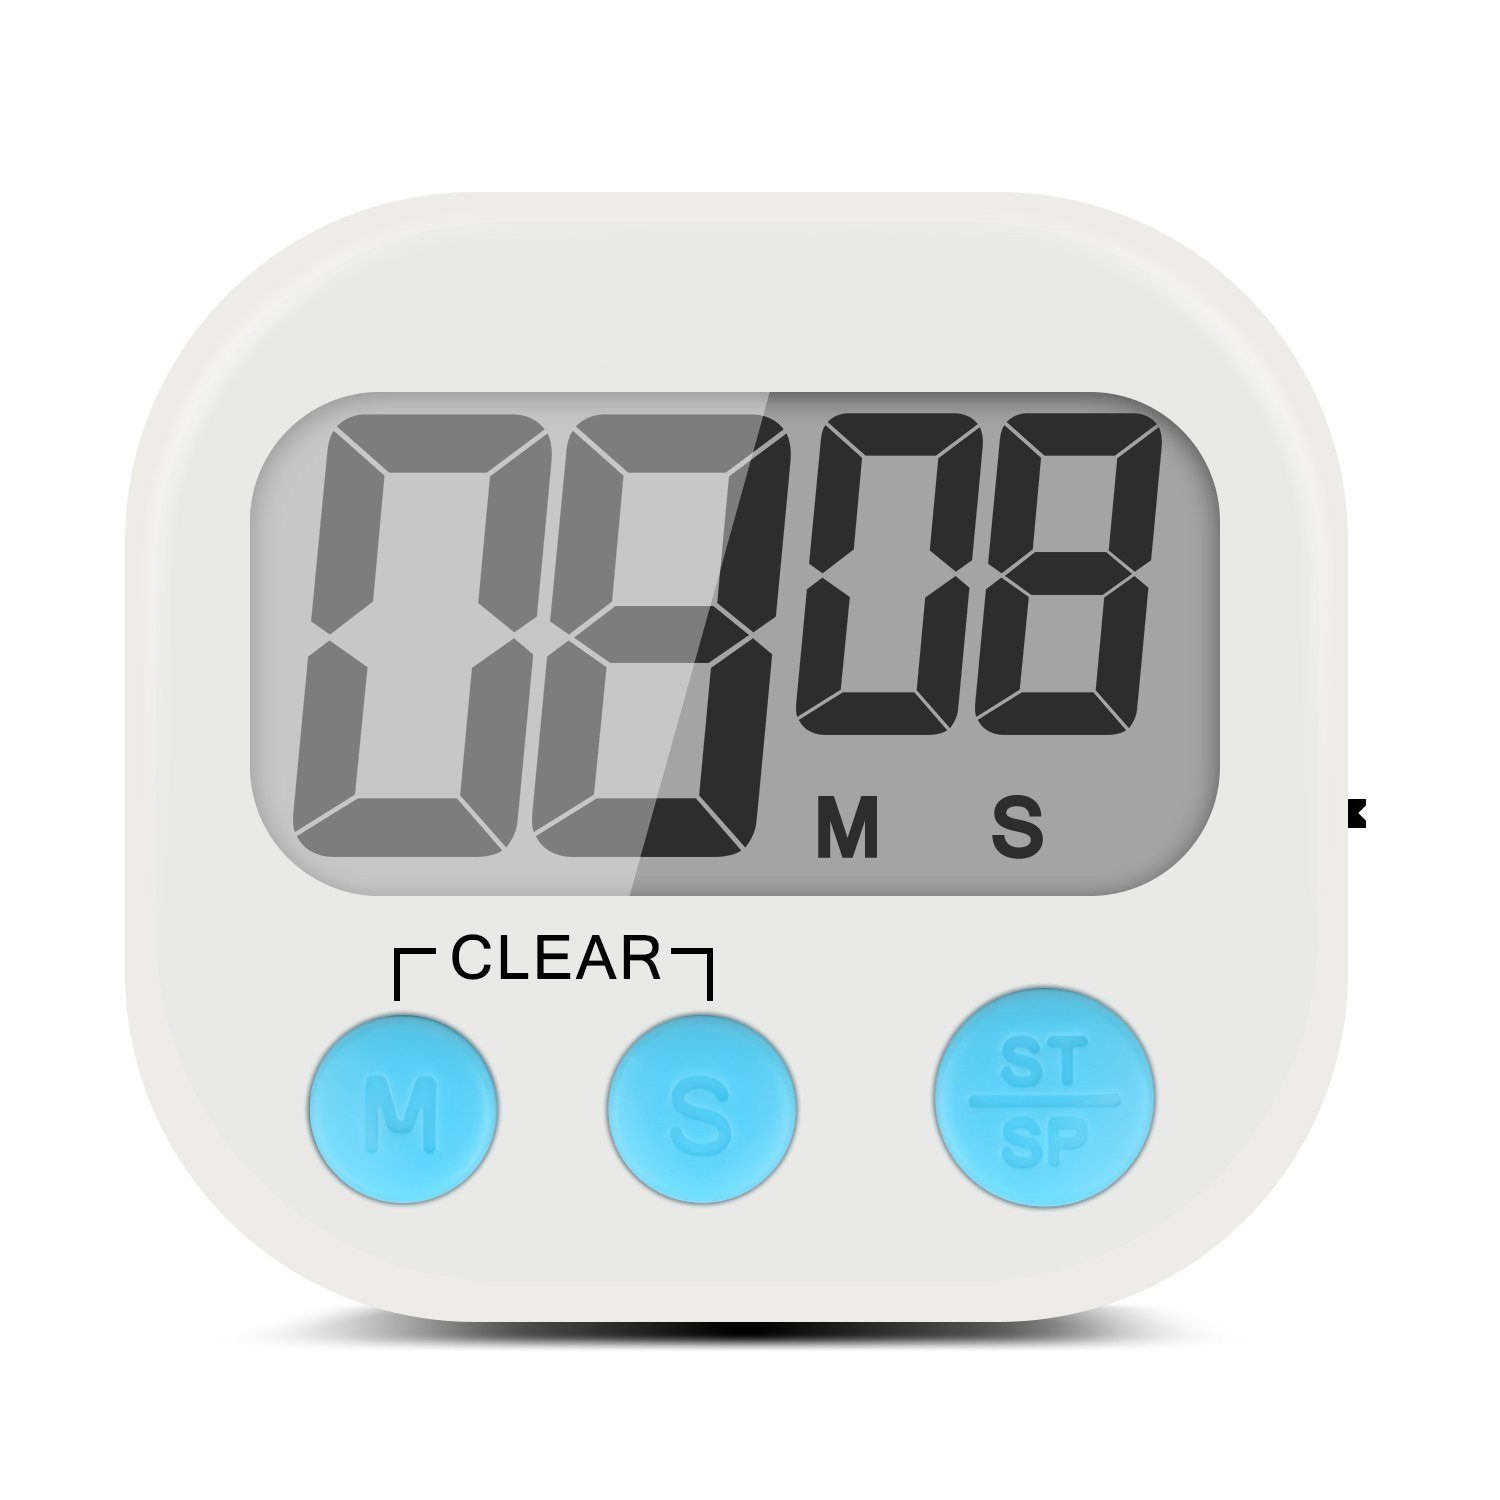 Digital Timer and Stopwatch, Large LCD Display, Auto Shut Off, Magnetic Back, Table Stand, Hanging Hook, Battery Included SNT SN190